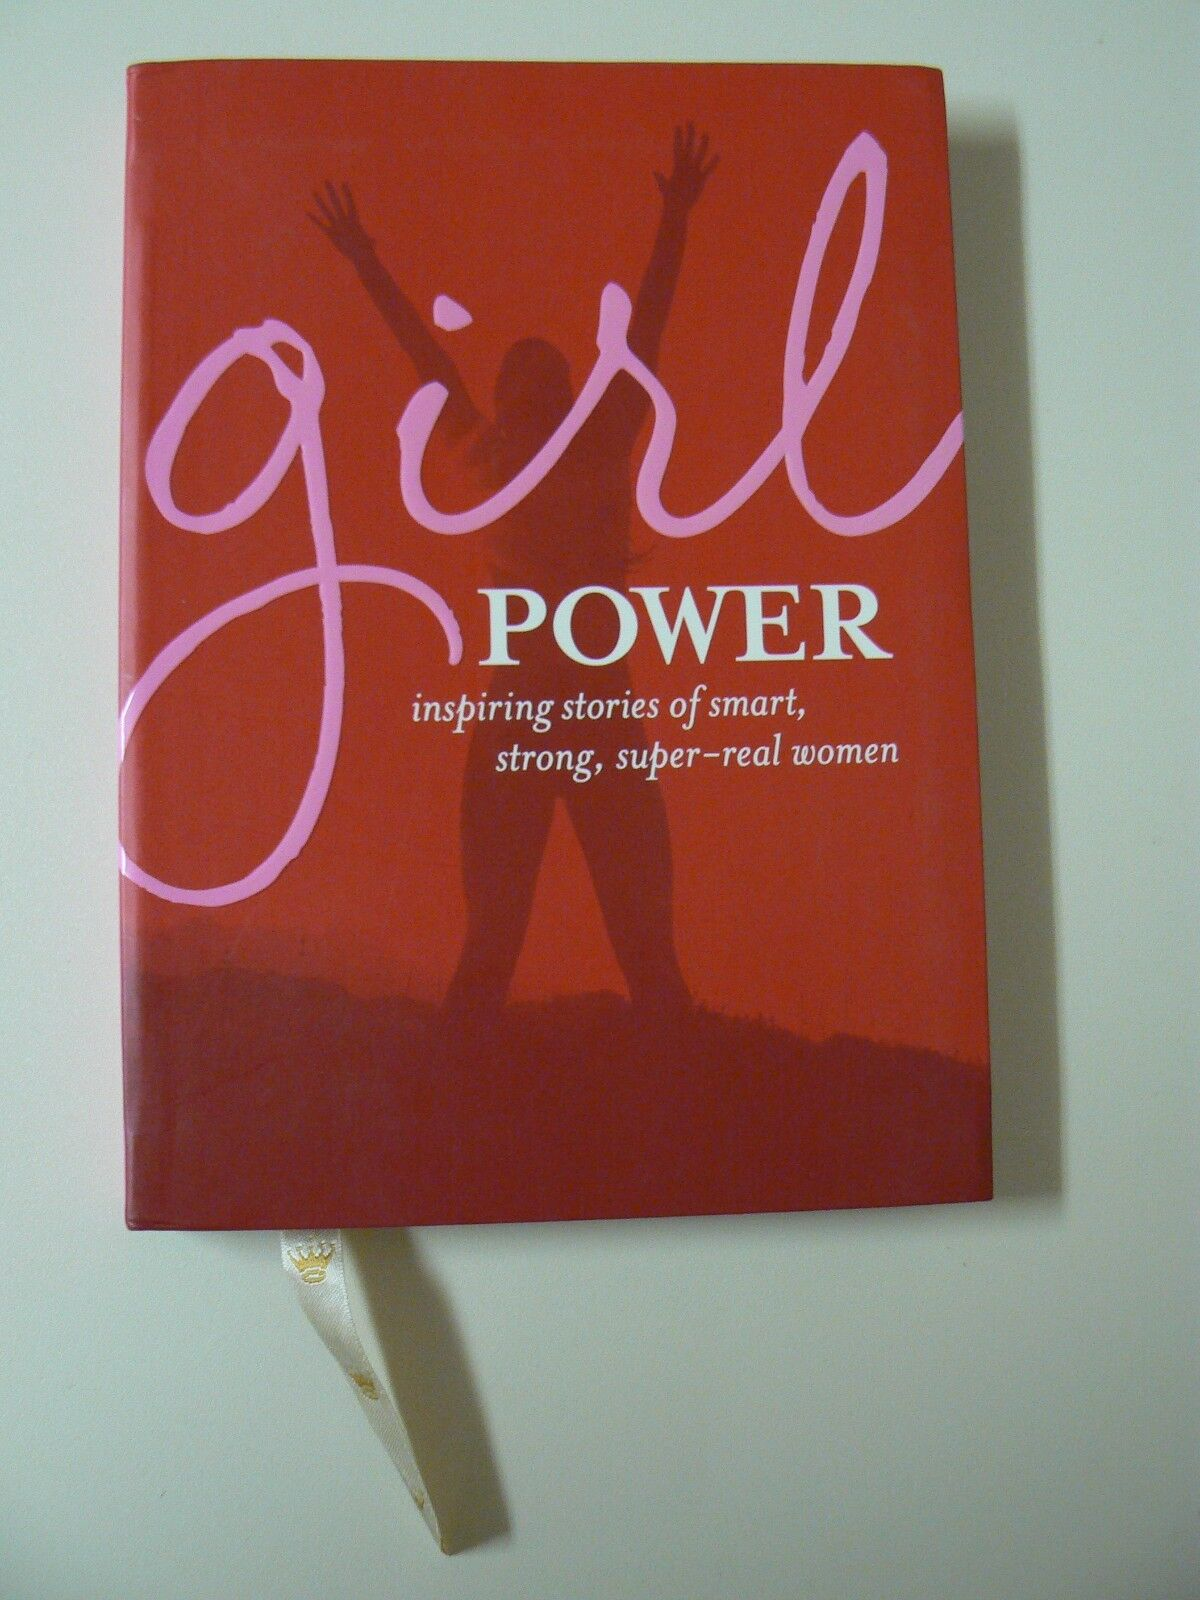 Hallmark Gift Book Girl Power Hardcover Inspiring Stories Smart ...